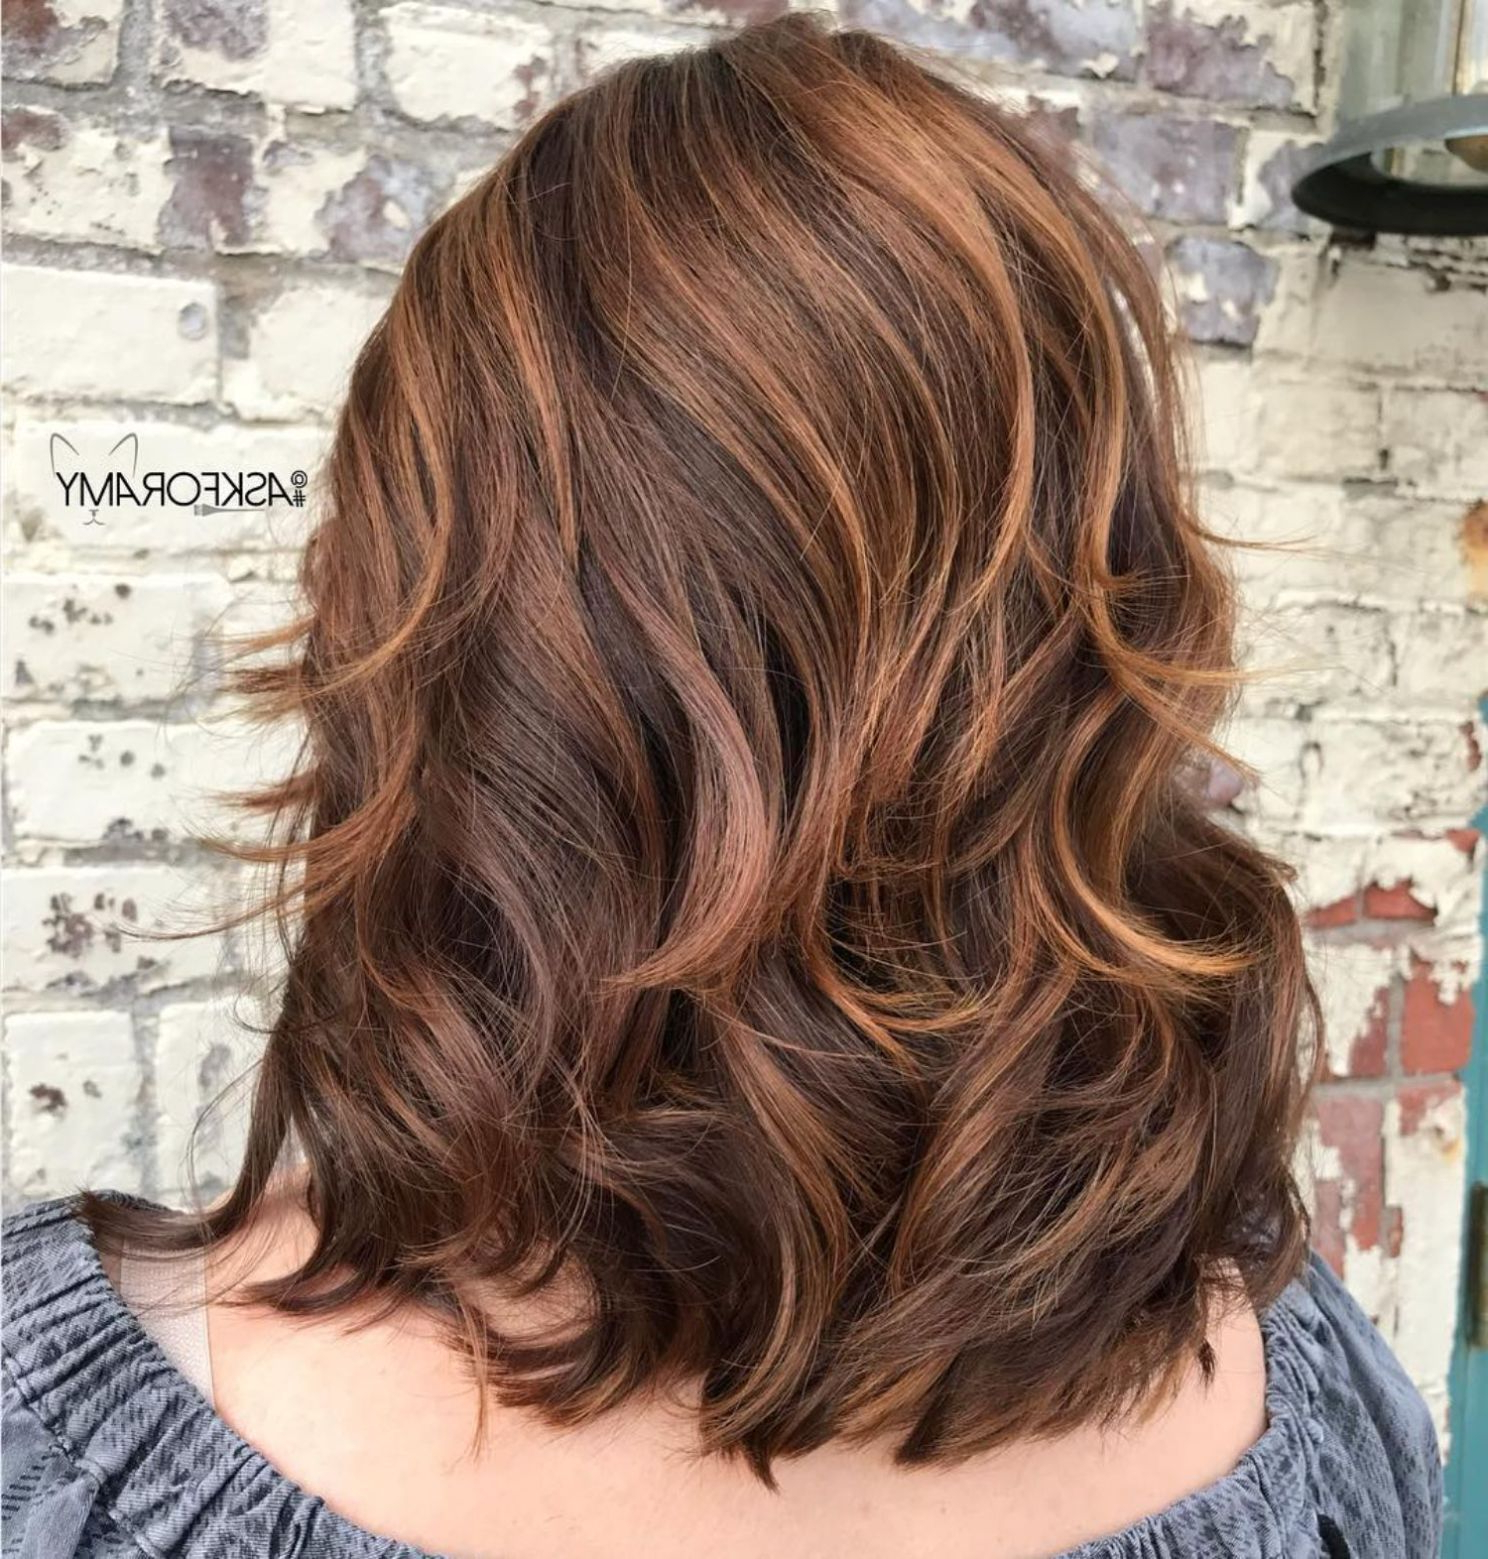 70 Brightest Medium Layered Haircuts To Light You Up | Hair In Chic Chocolate Layers Hairstyles (View 14 of 20)